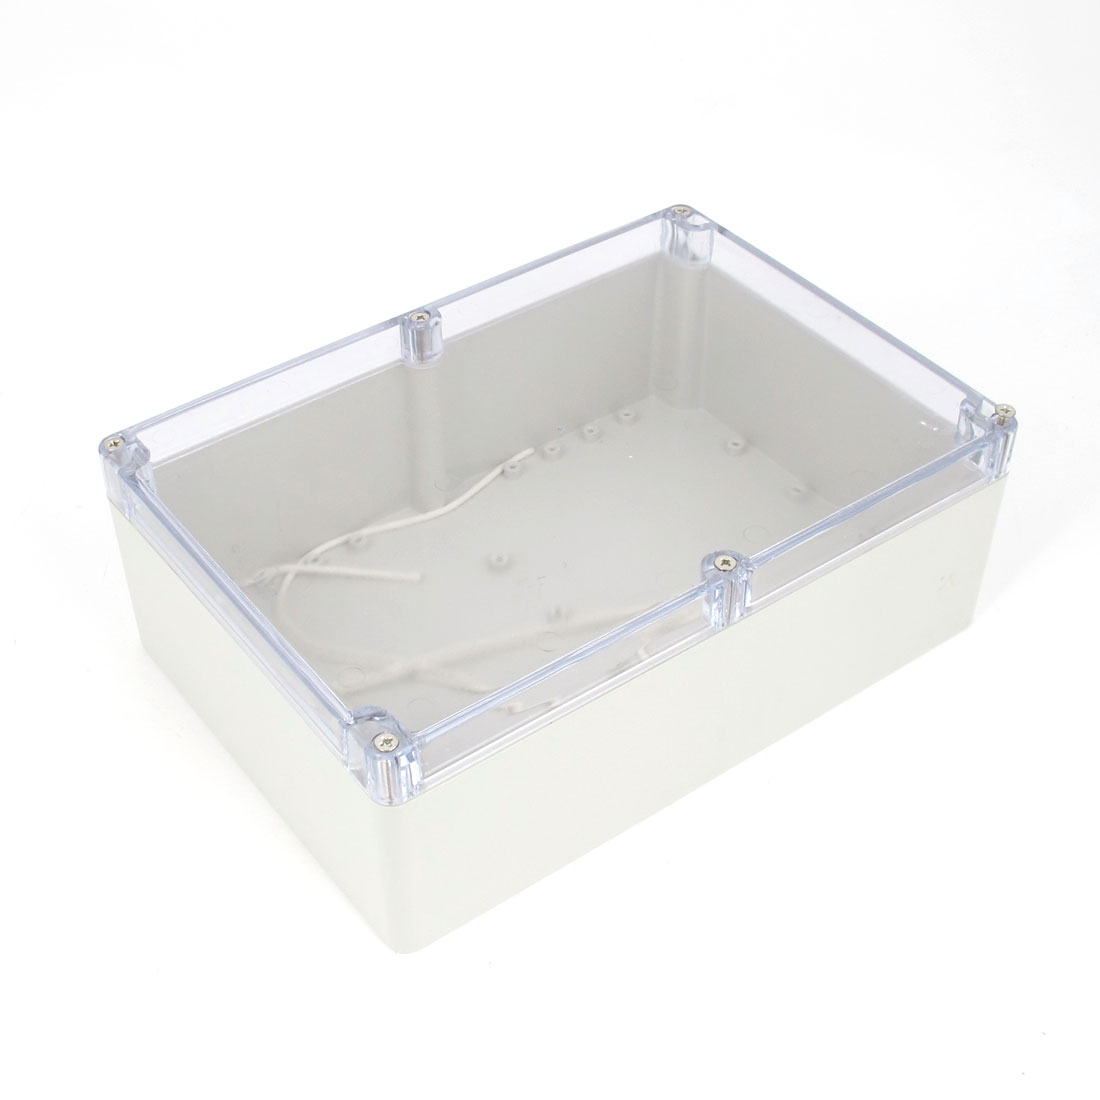 Power Cable Connector Clear Waterproof Case Junction Box 263mmx182mmx95mm